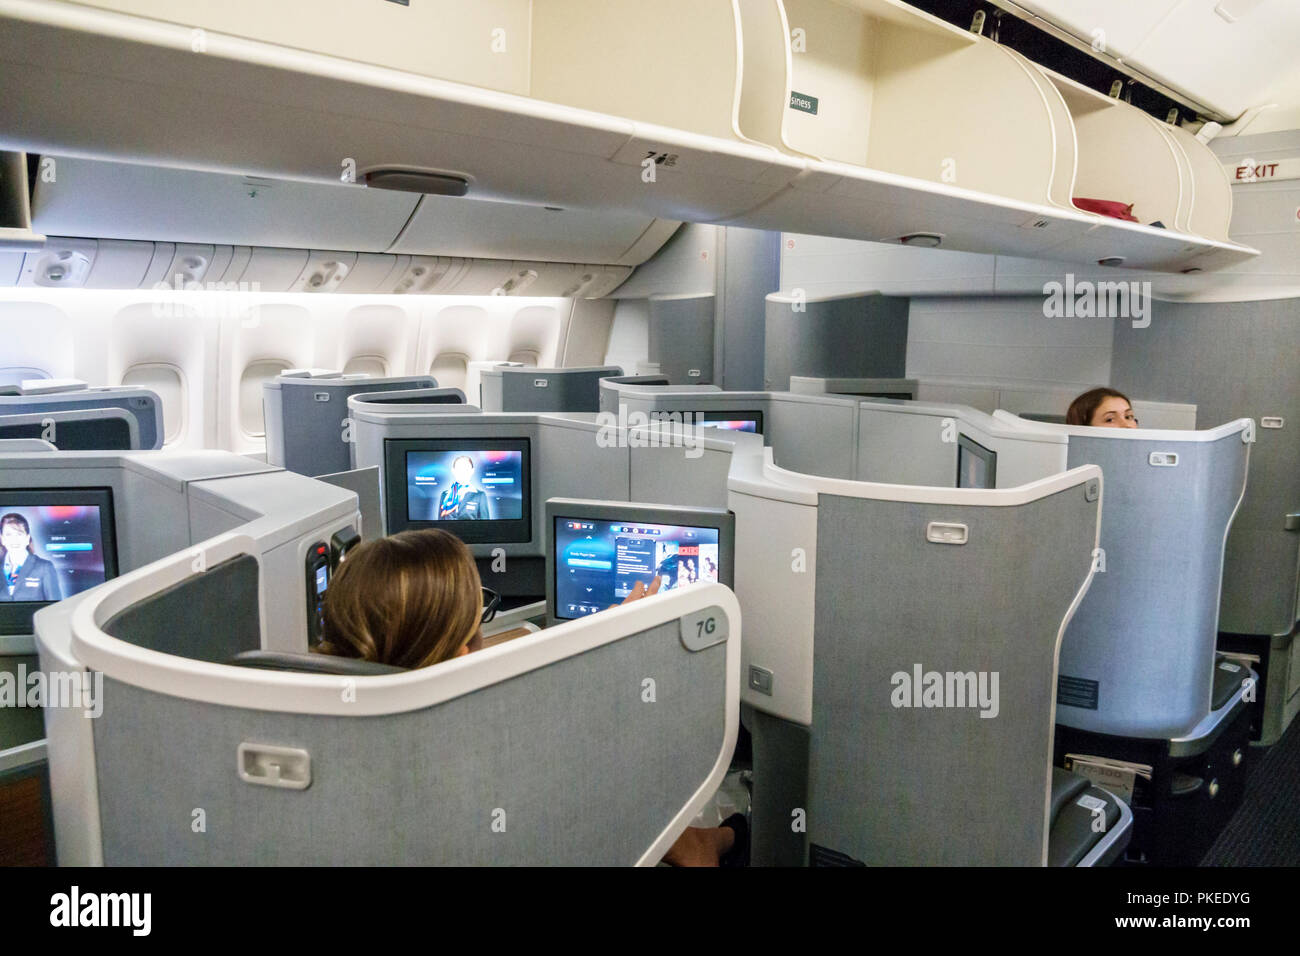 Miami Florida International Airport MIA American onboard Airlines flight 56 business class seat seating cabin inside seatback screens open overhead lu - Stock Image